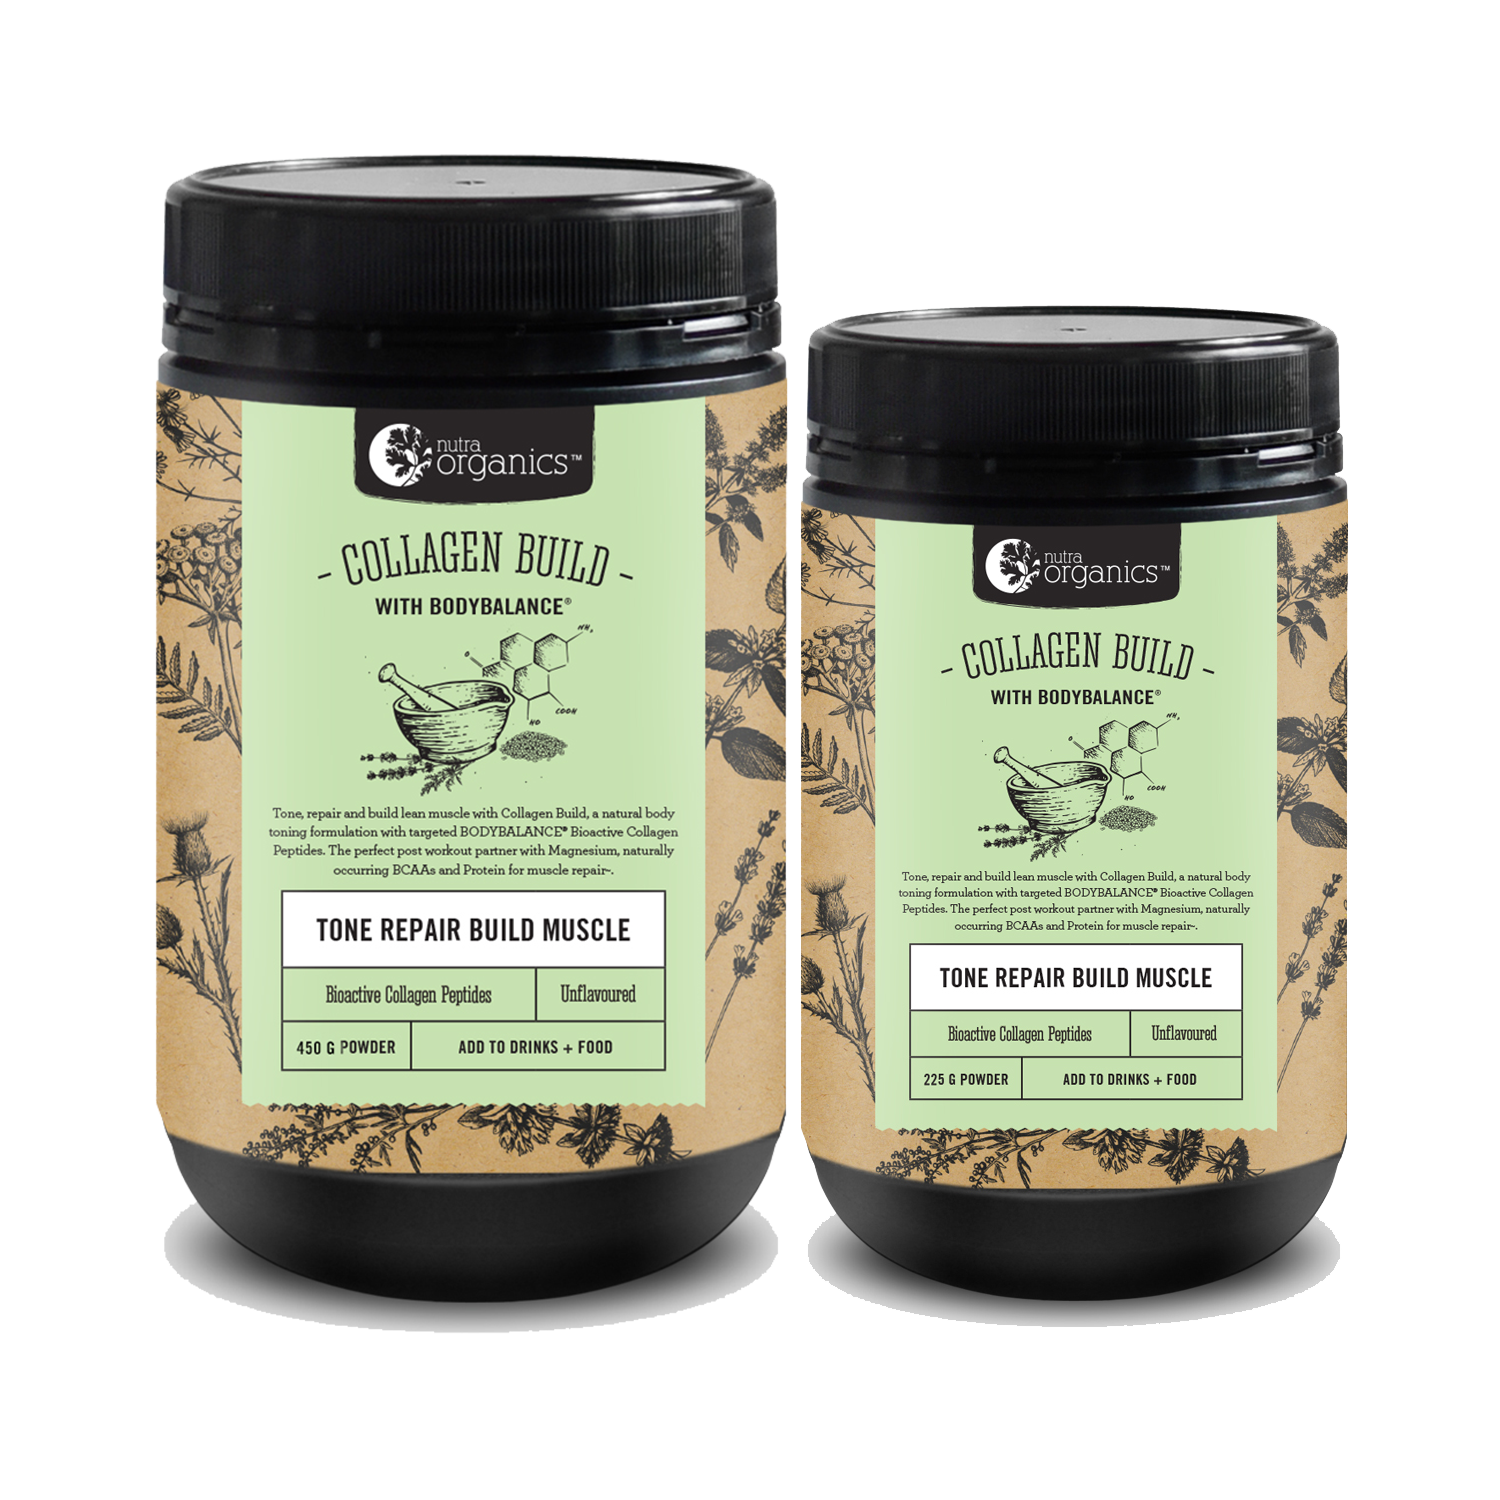 NEW - cOLLAGEN BUILD with bodybalance® - TONE // REPAIR // BUILD MUSCLE